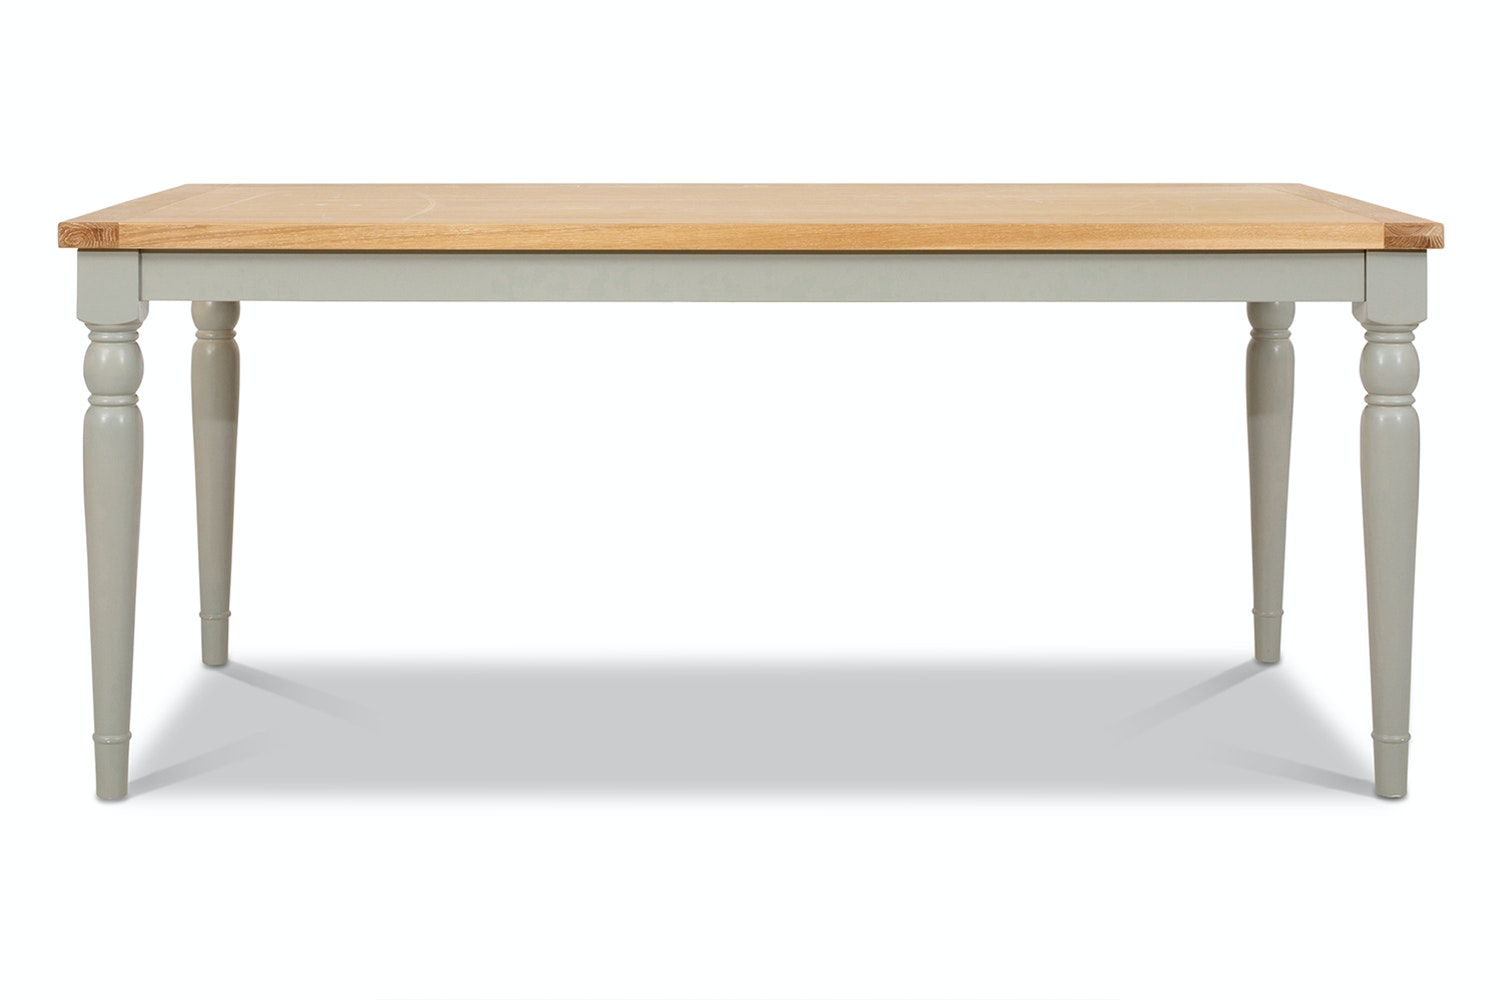 Ceres Dining Table | Turned Leg | 180cm | Colourtrend